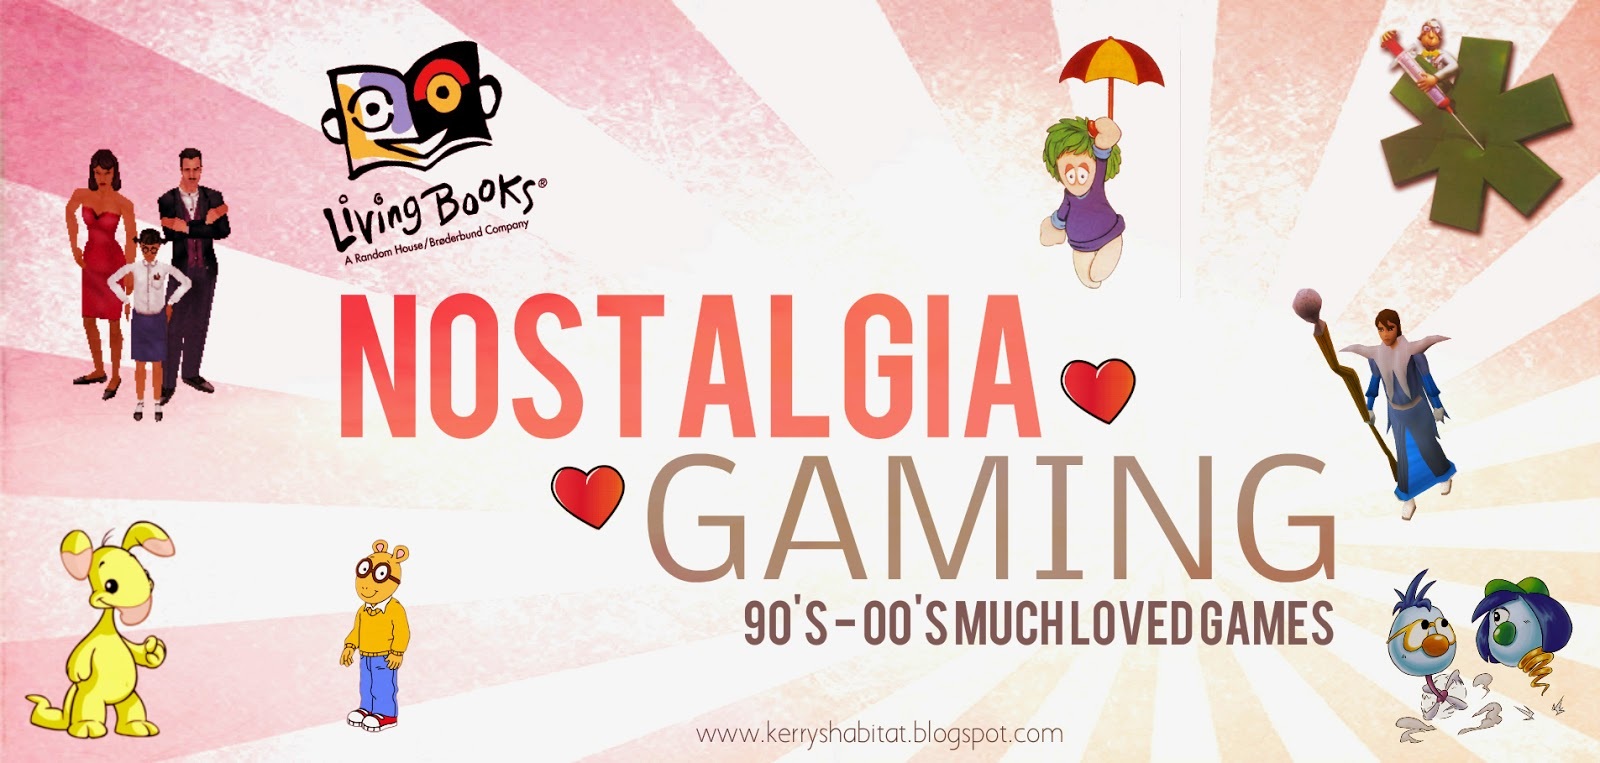 http://kerryshabitat.blogspot.co.uk/2014/07/gaming-nostaliga-attack-loved-games.html